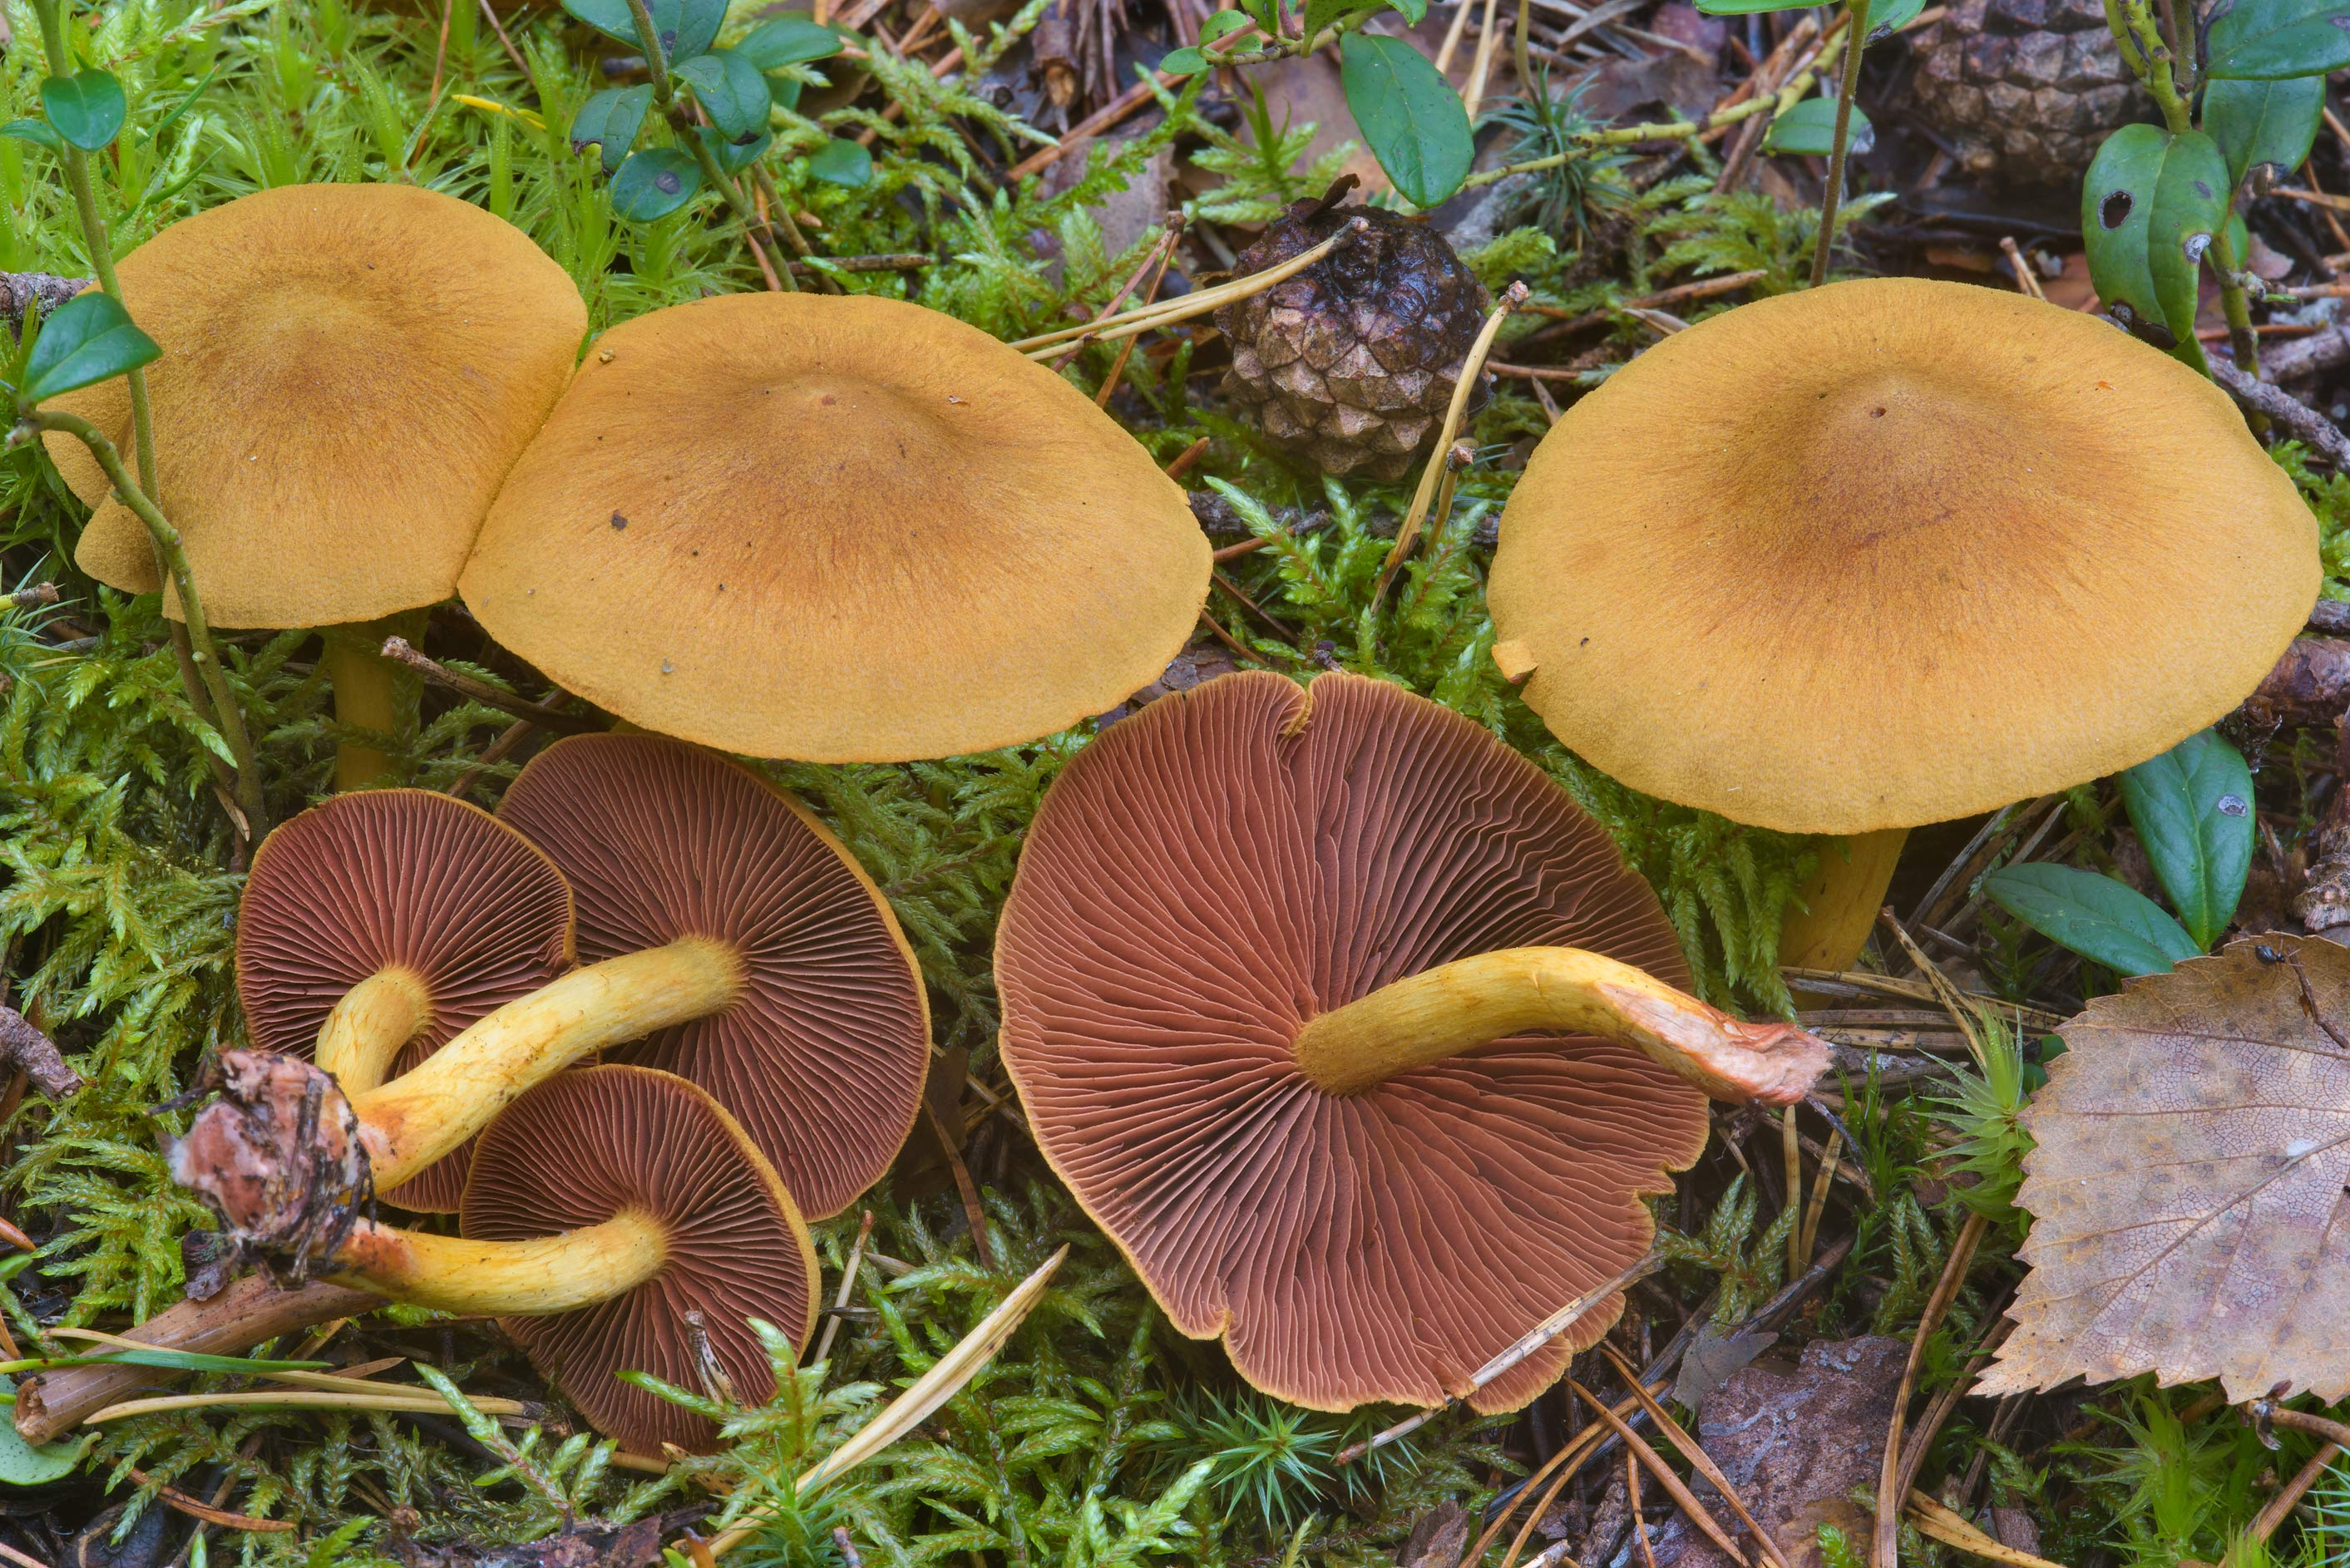 Surprise webcap mushrooms (Cortinarius...miles north from St.Petersburg. Russia